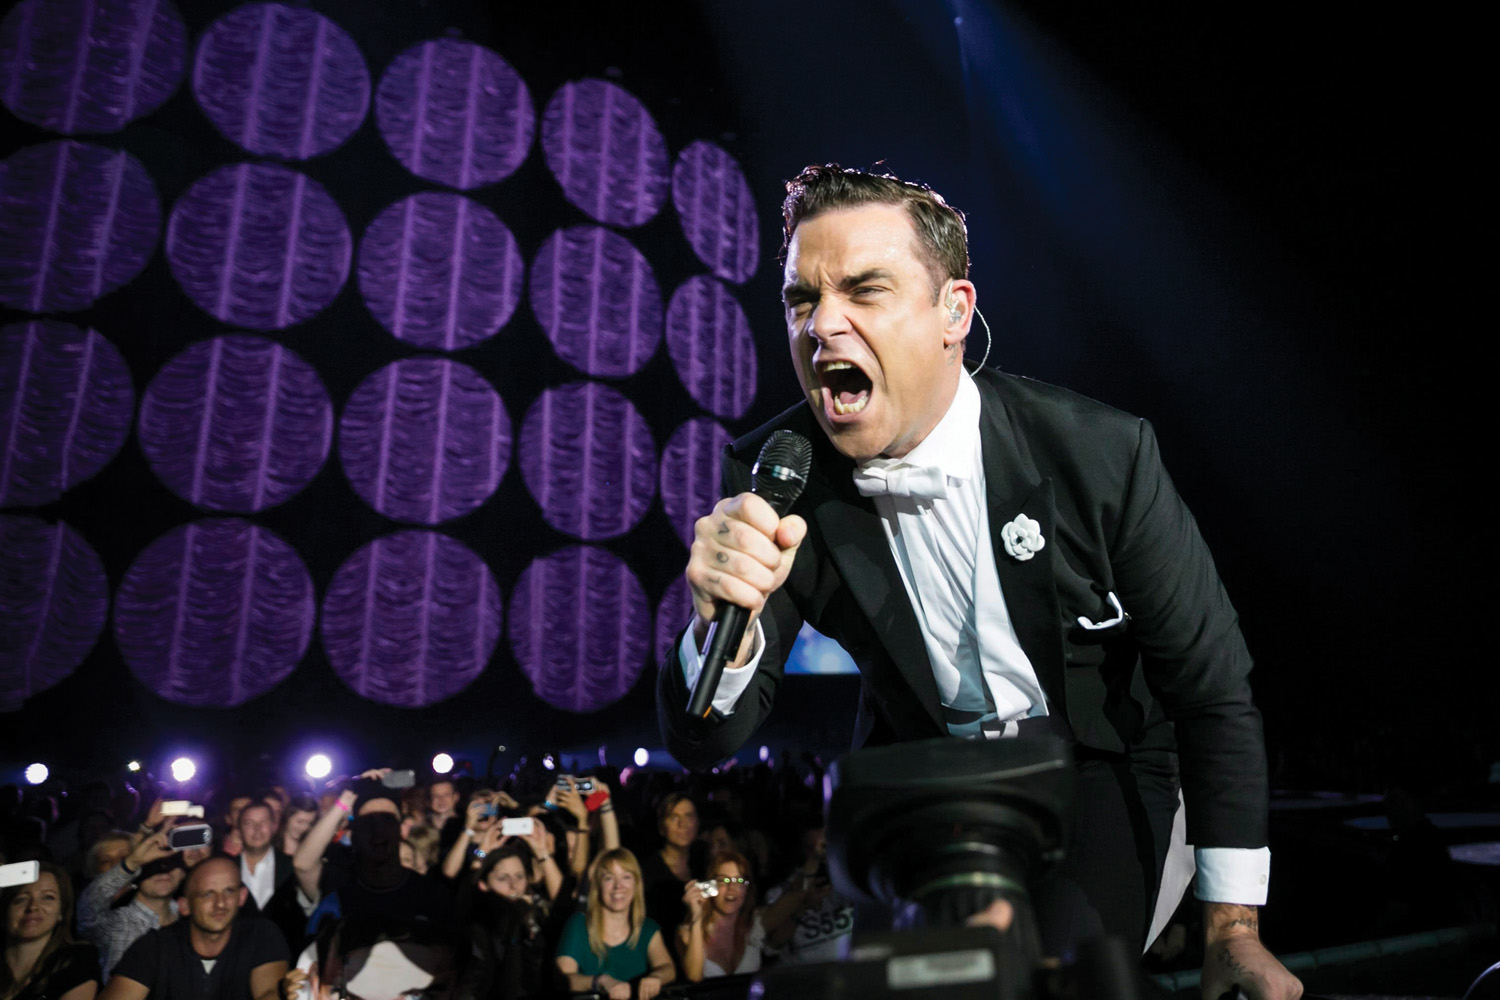 Robbie Williams Gig In Bucharest Confirmed On July 17